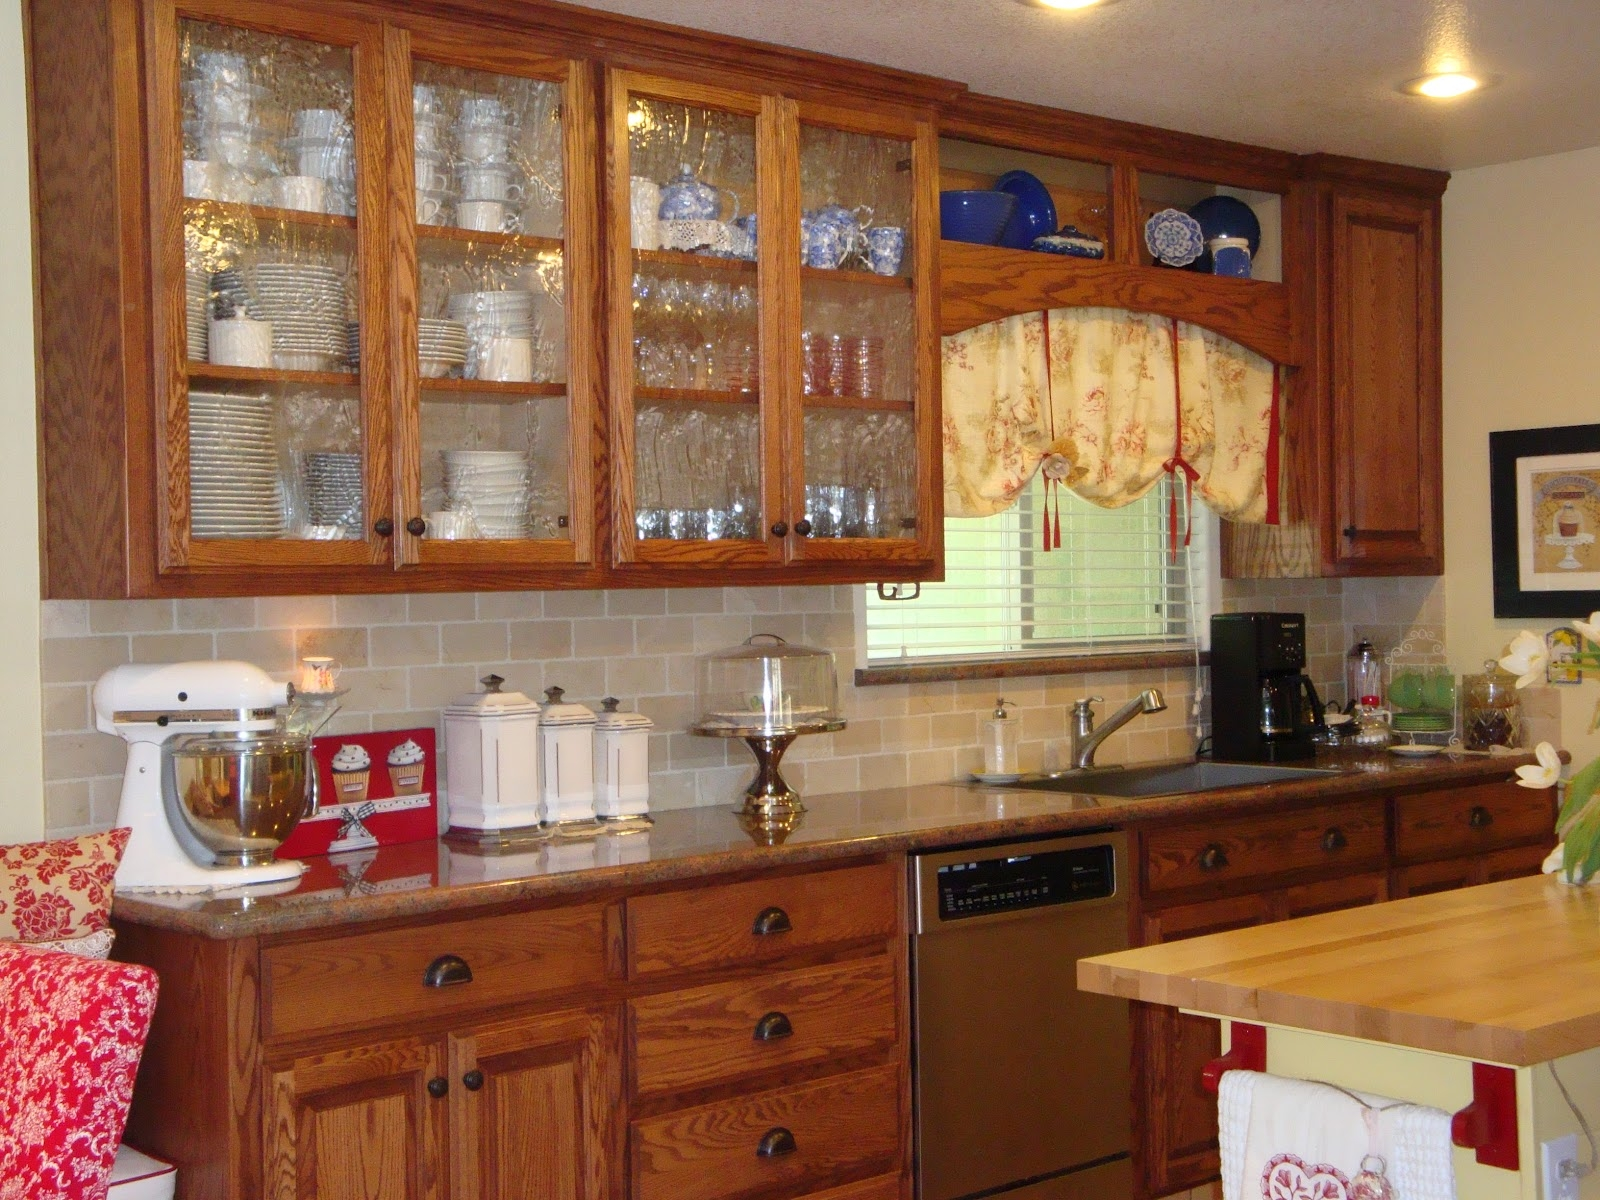 Horizontal Kitchen Wall Cabinet With Glass Door